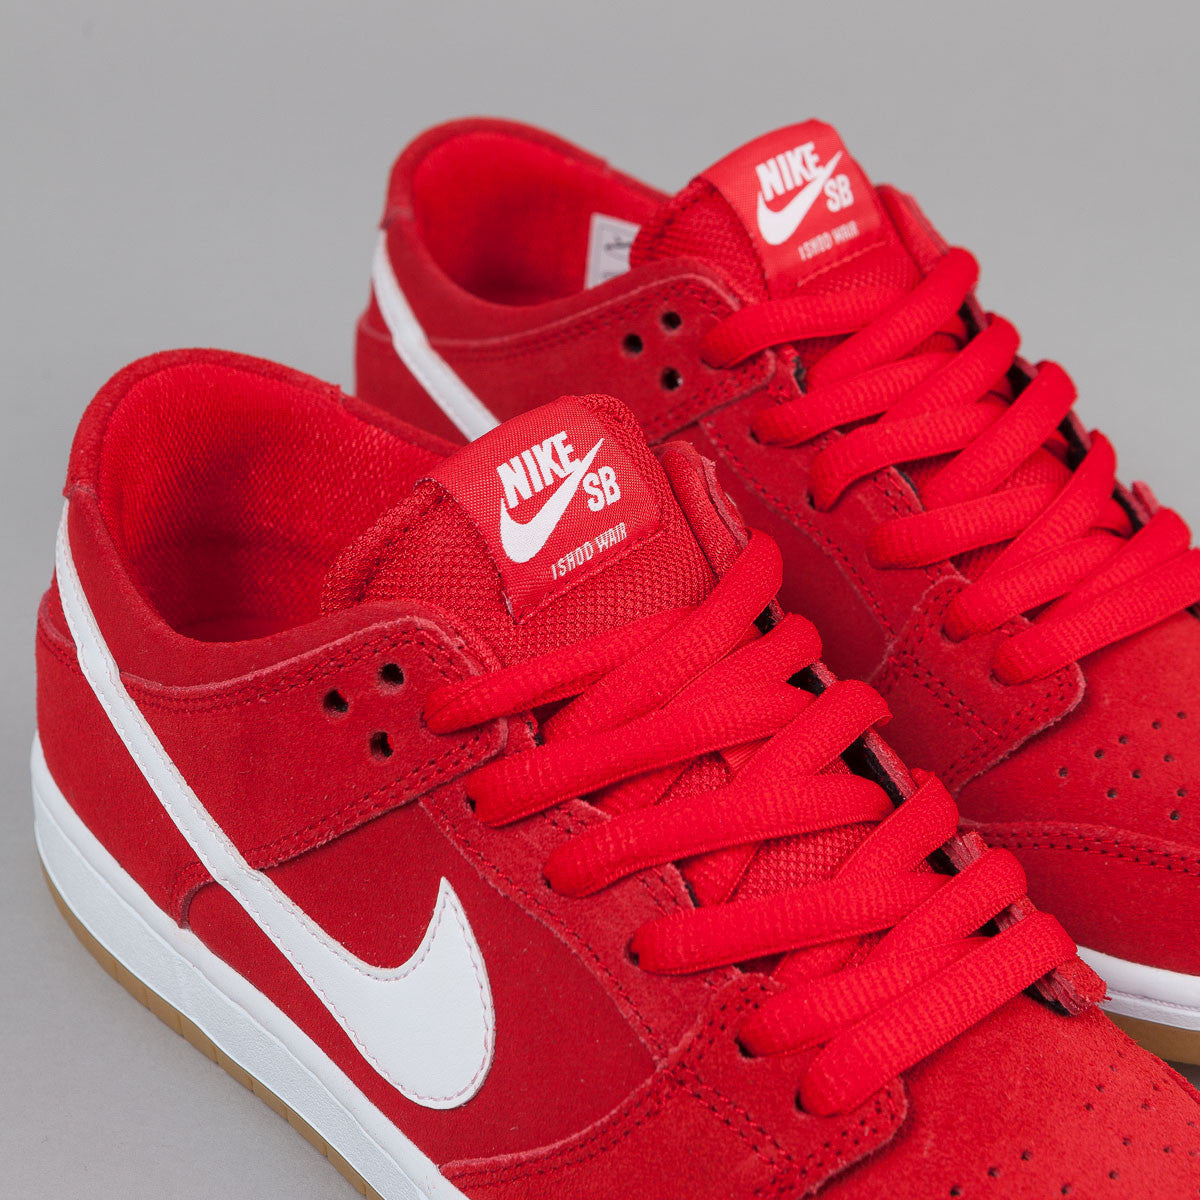 Nike SB Dunk Low Pro Ishod Wair Shoes - University Red / White - Light Brown